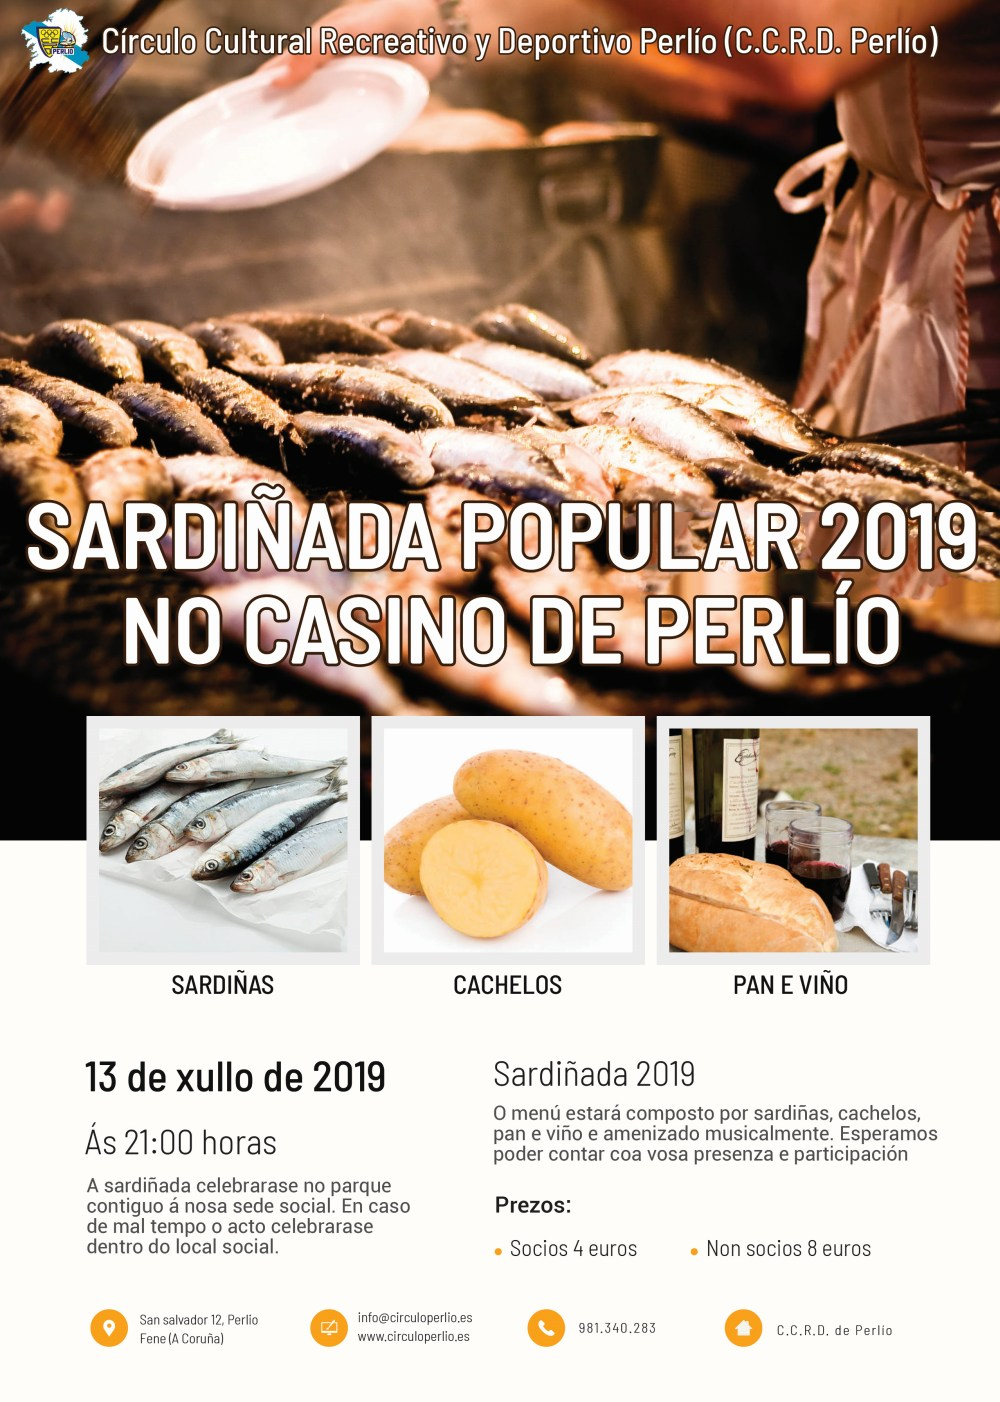 Sardiñada popular 2019 no Casino de Perlío